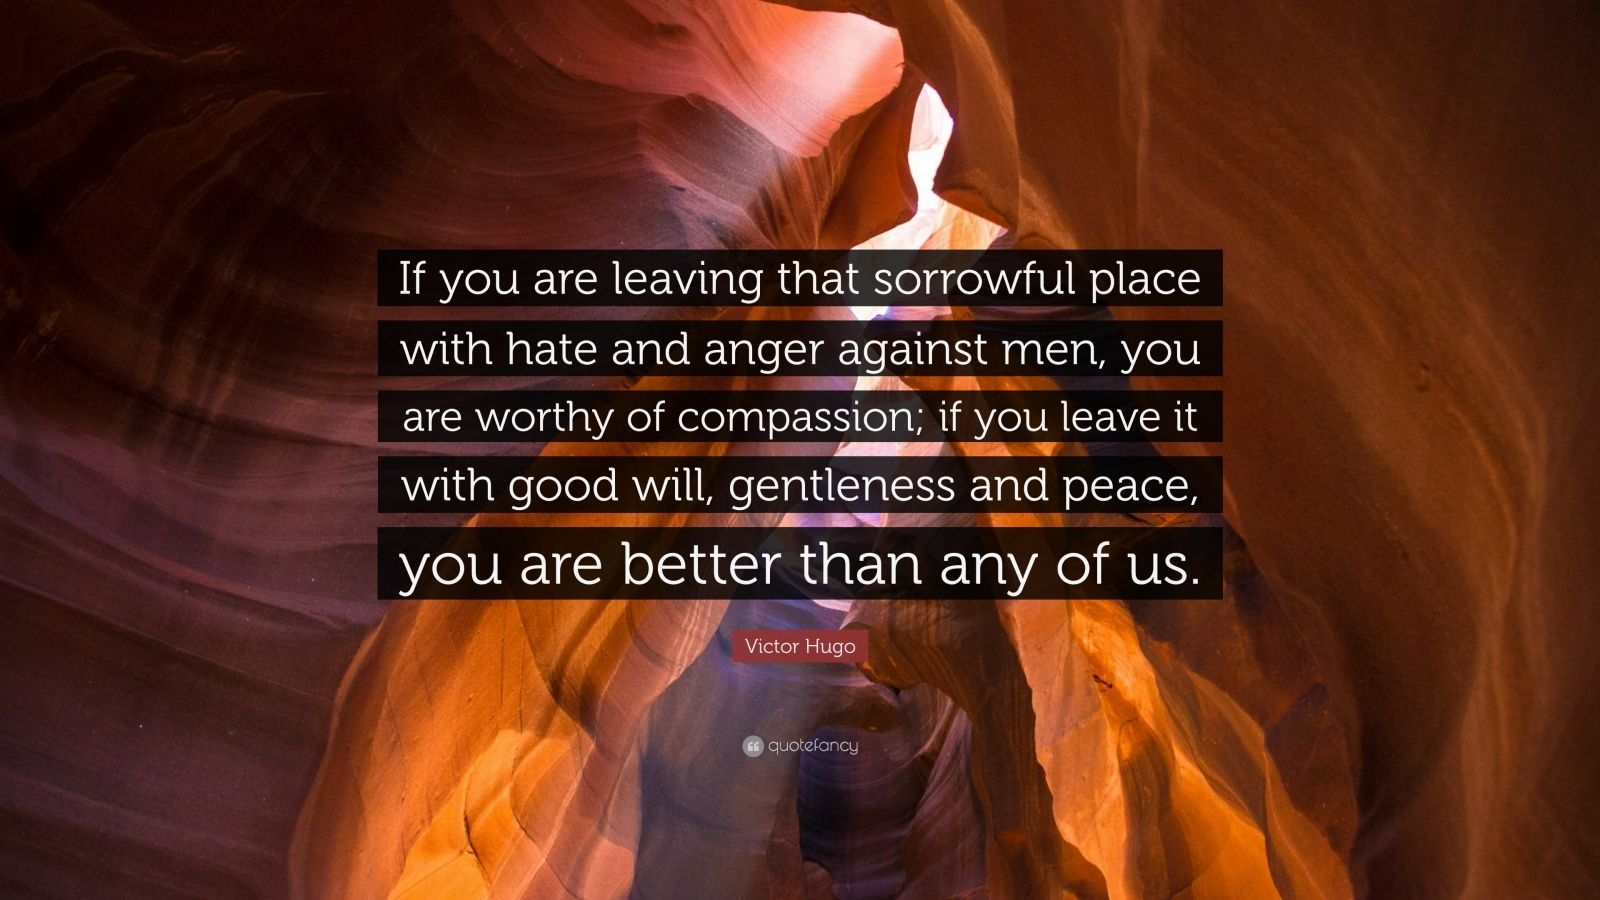 """Victor Hugo Quote: """"If you are leaving that sorrowful place with hate and anger against men, you are worthy of compassion; if you leave it with good will, gentleness and peace, you are better than any of us."""""""